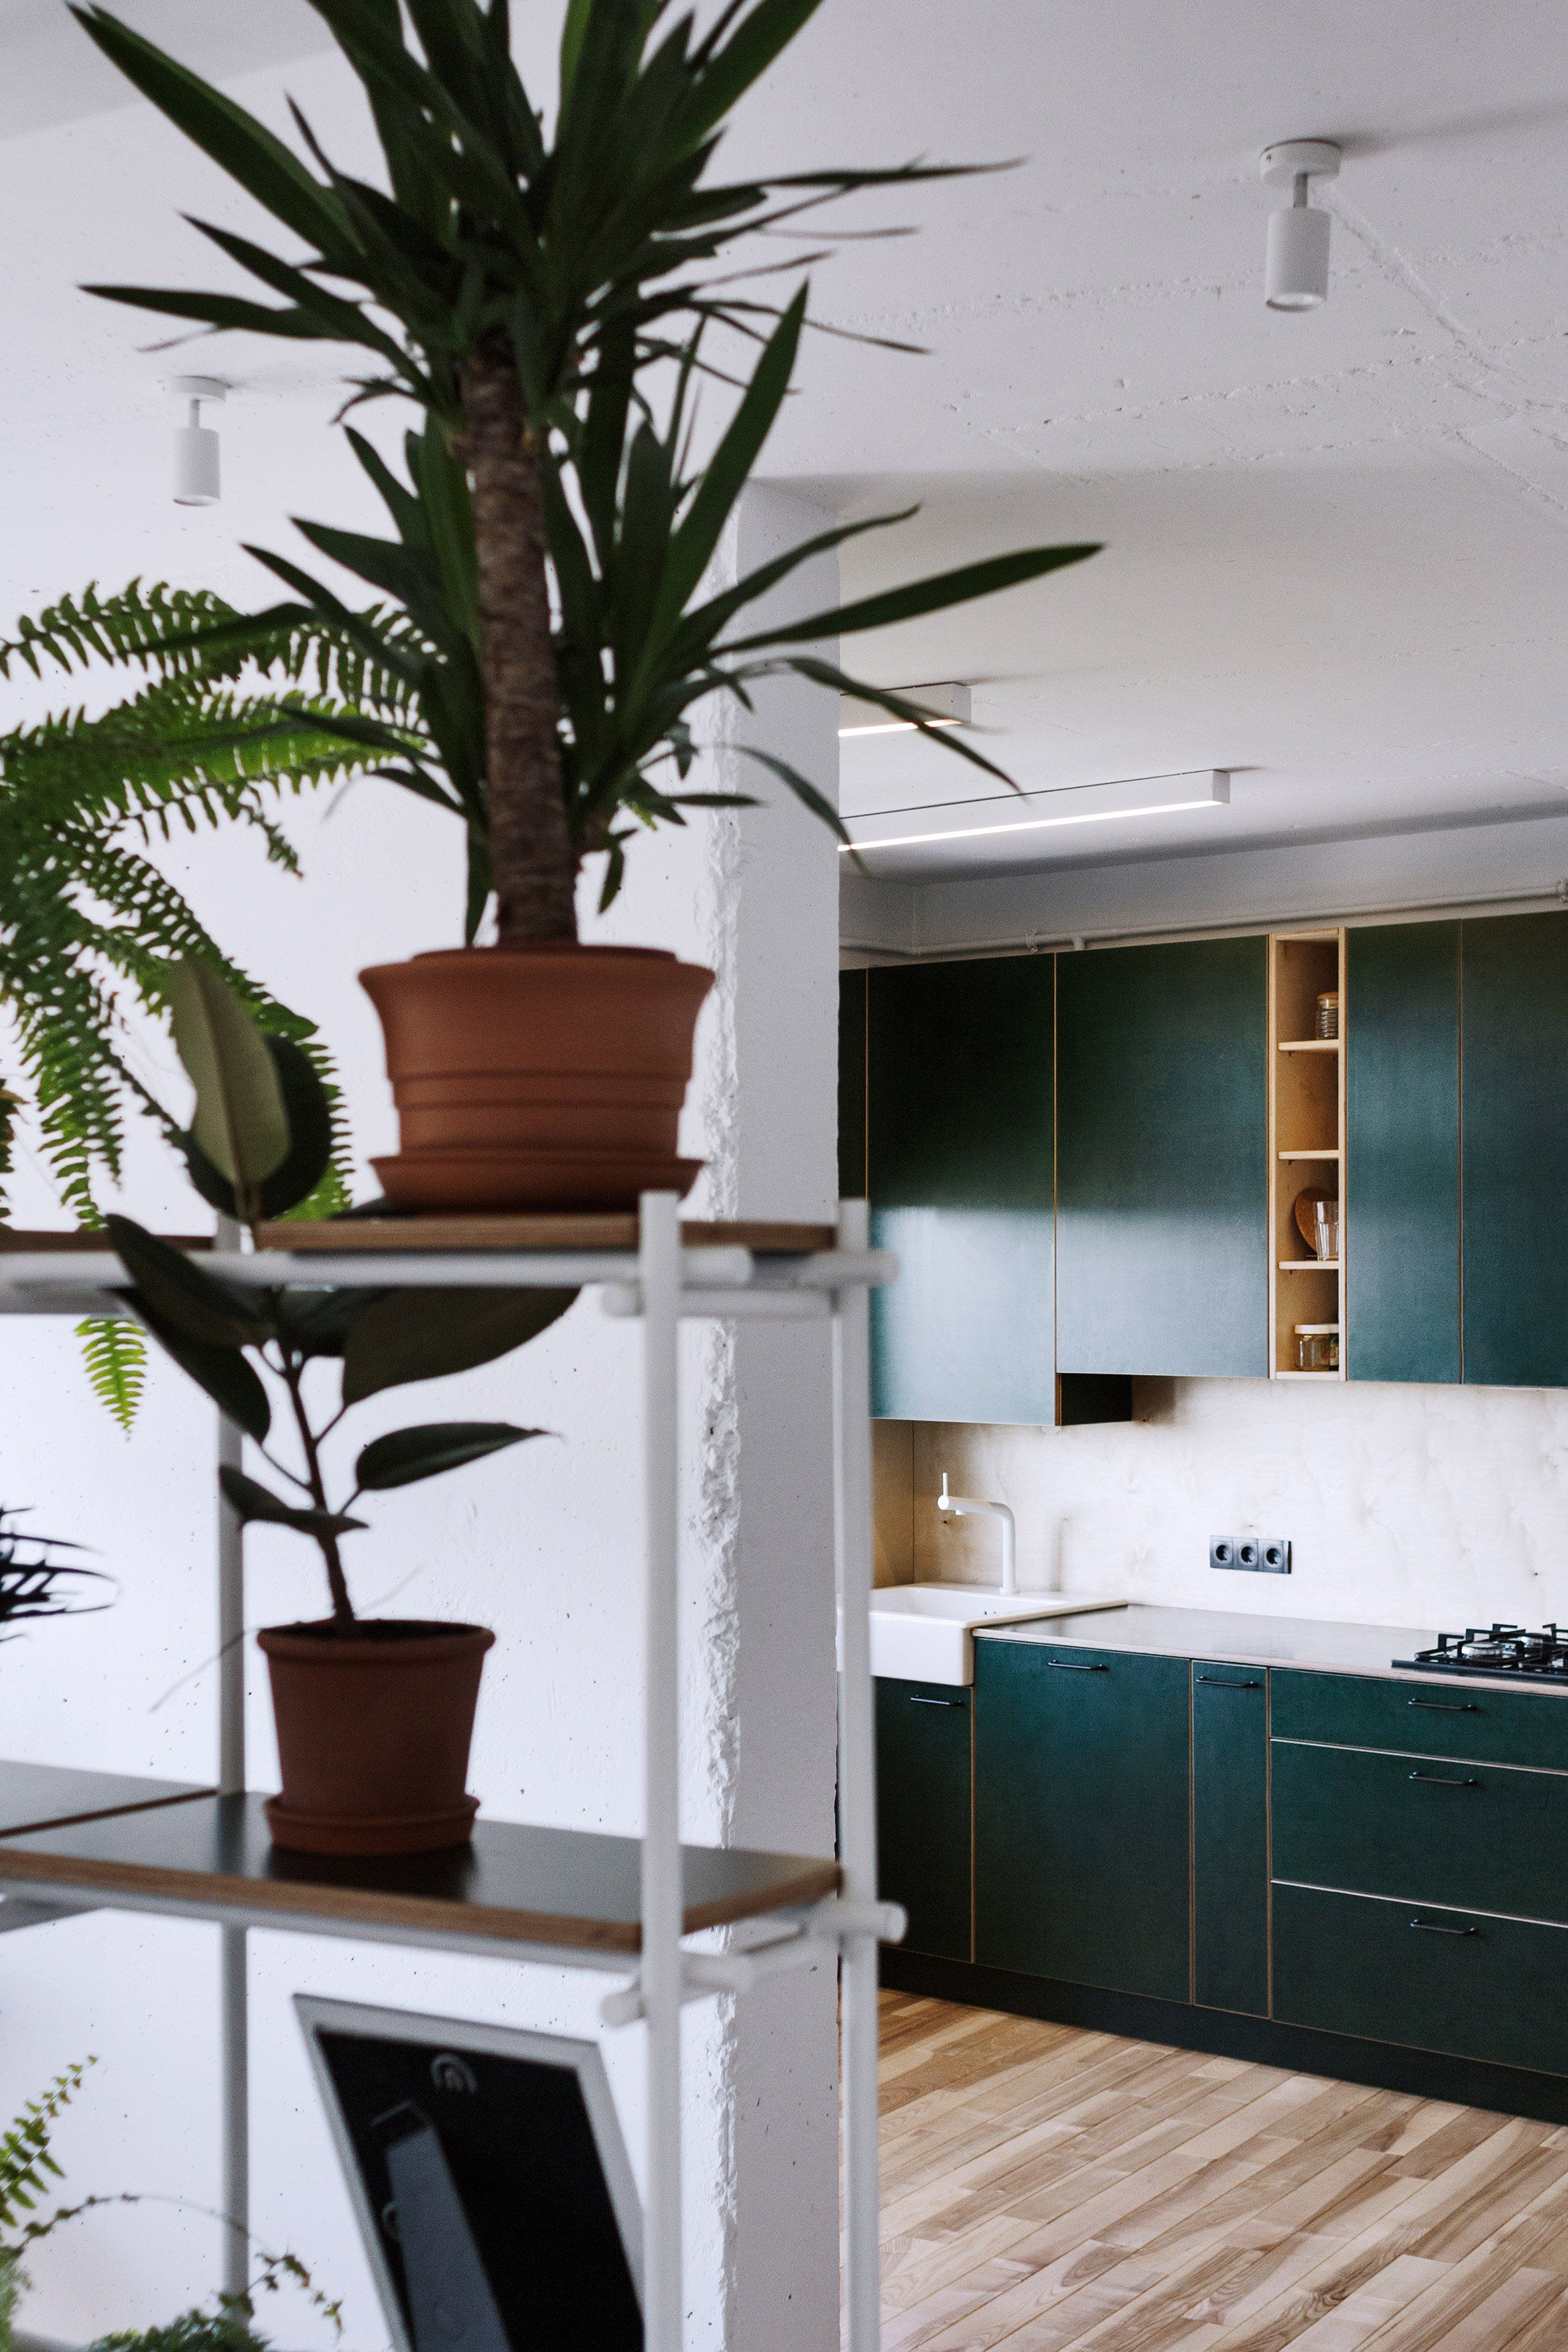 A Kitchen Decked Out With Forest Green Plywood Cabinets And A